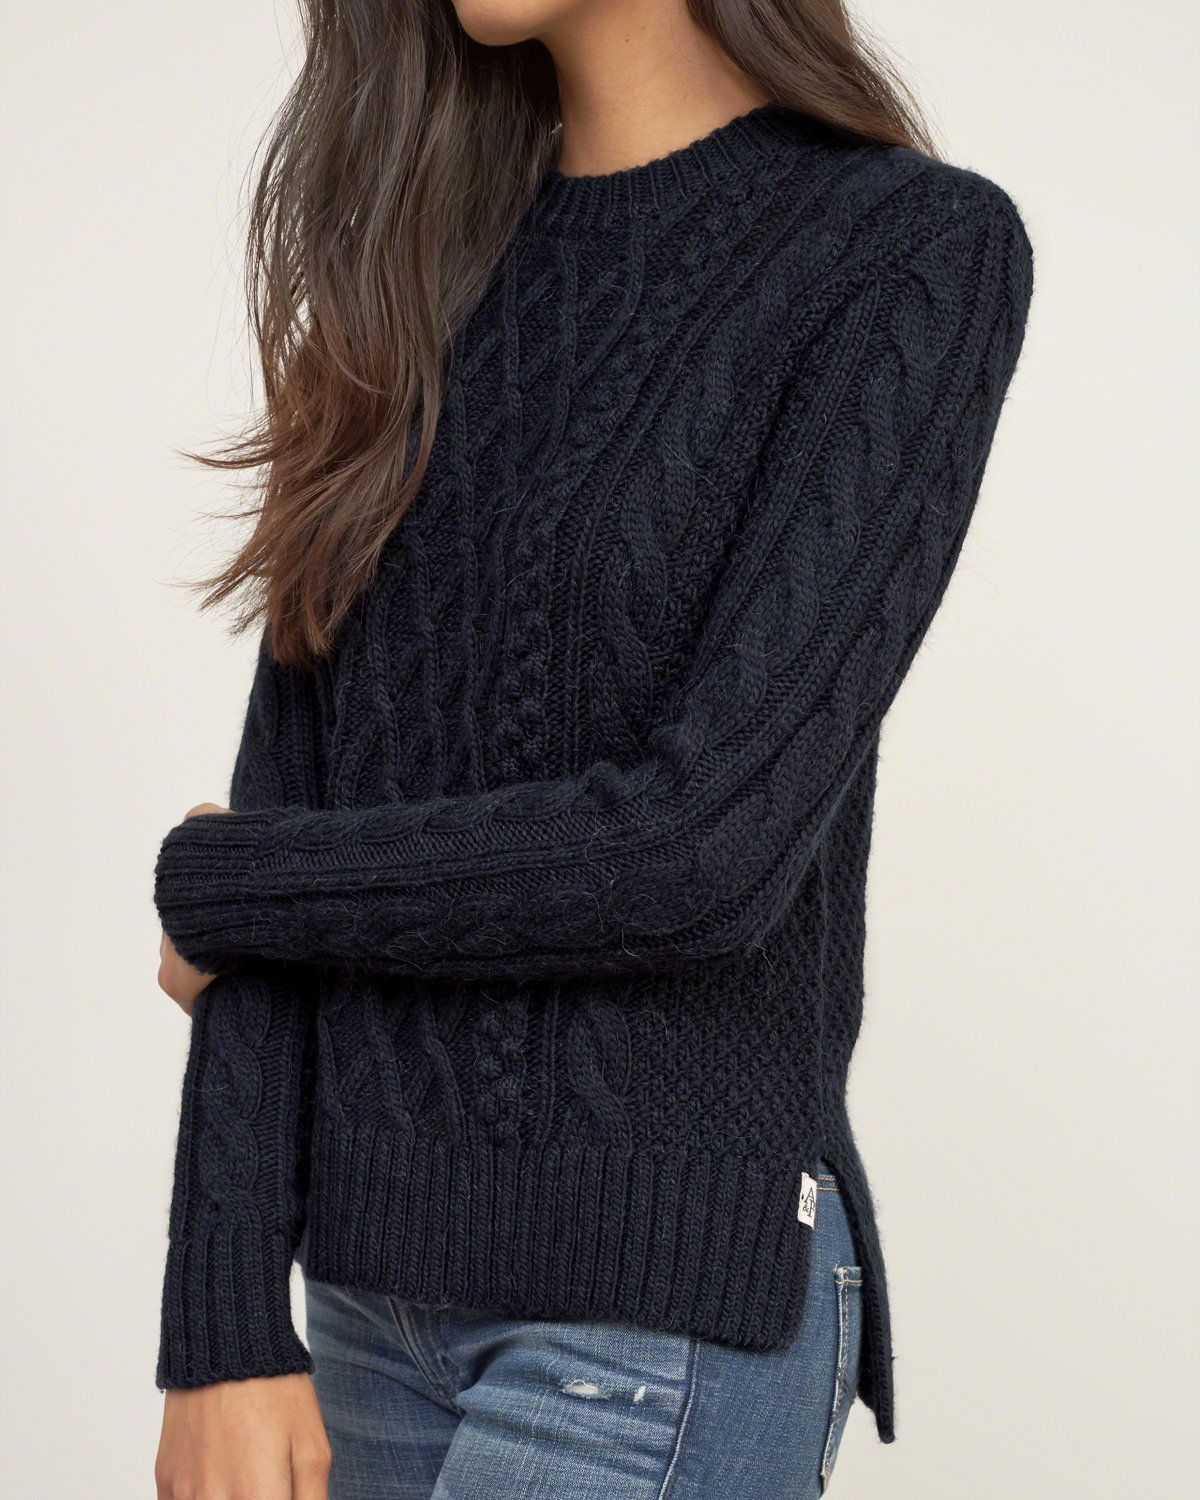 black knitted jumper womens - Google Search  2ea1b10e5